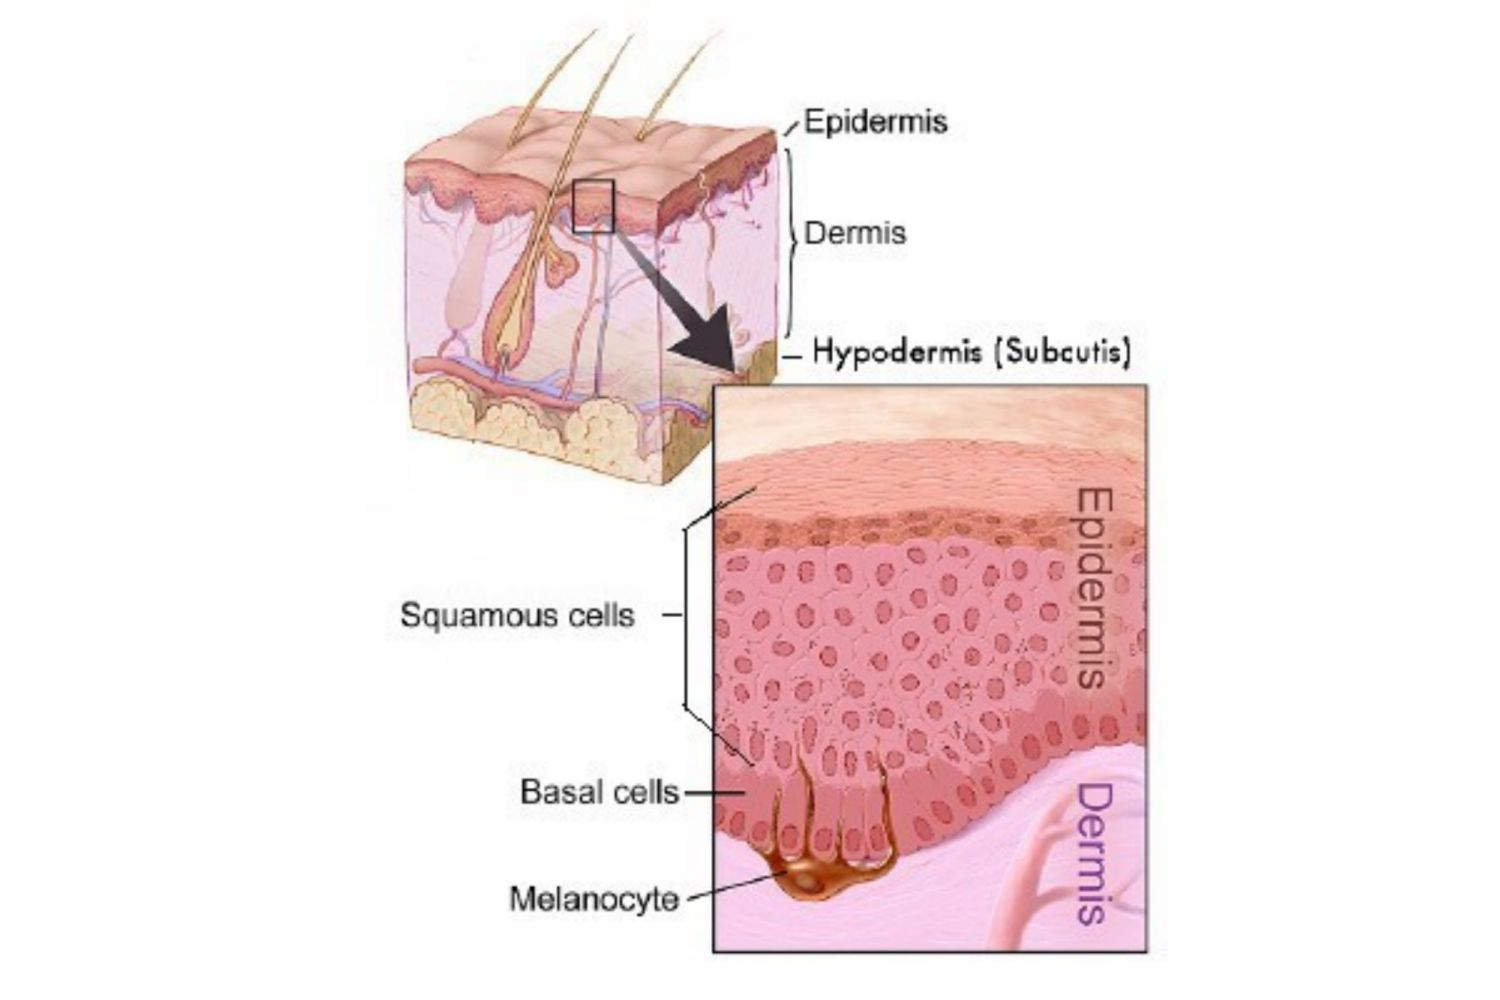 7 layers of skin diagram sql server entity relationship the integumentary system epidermis